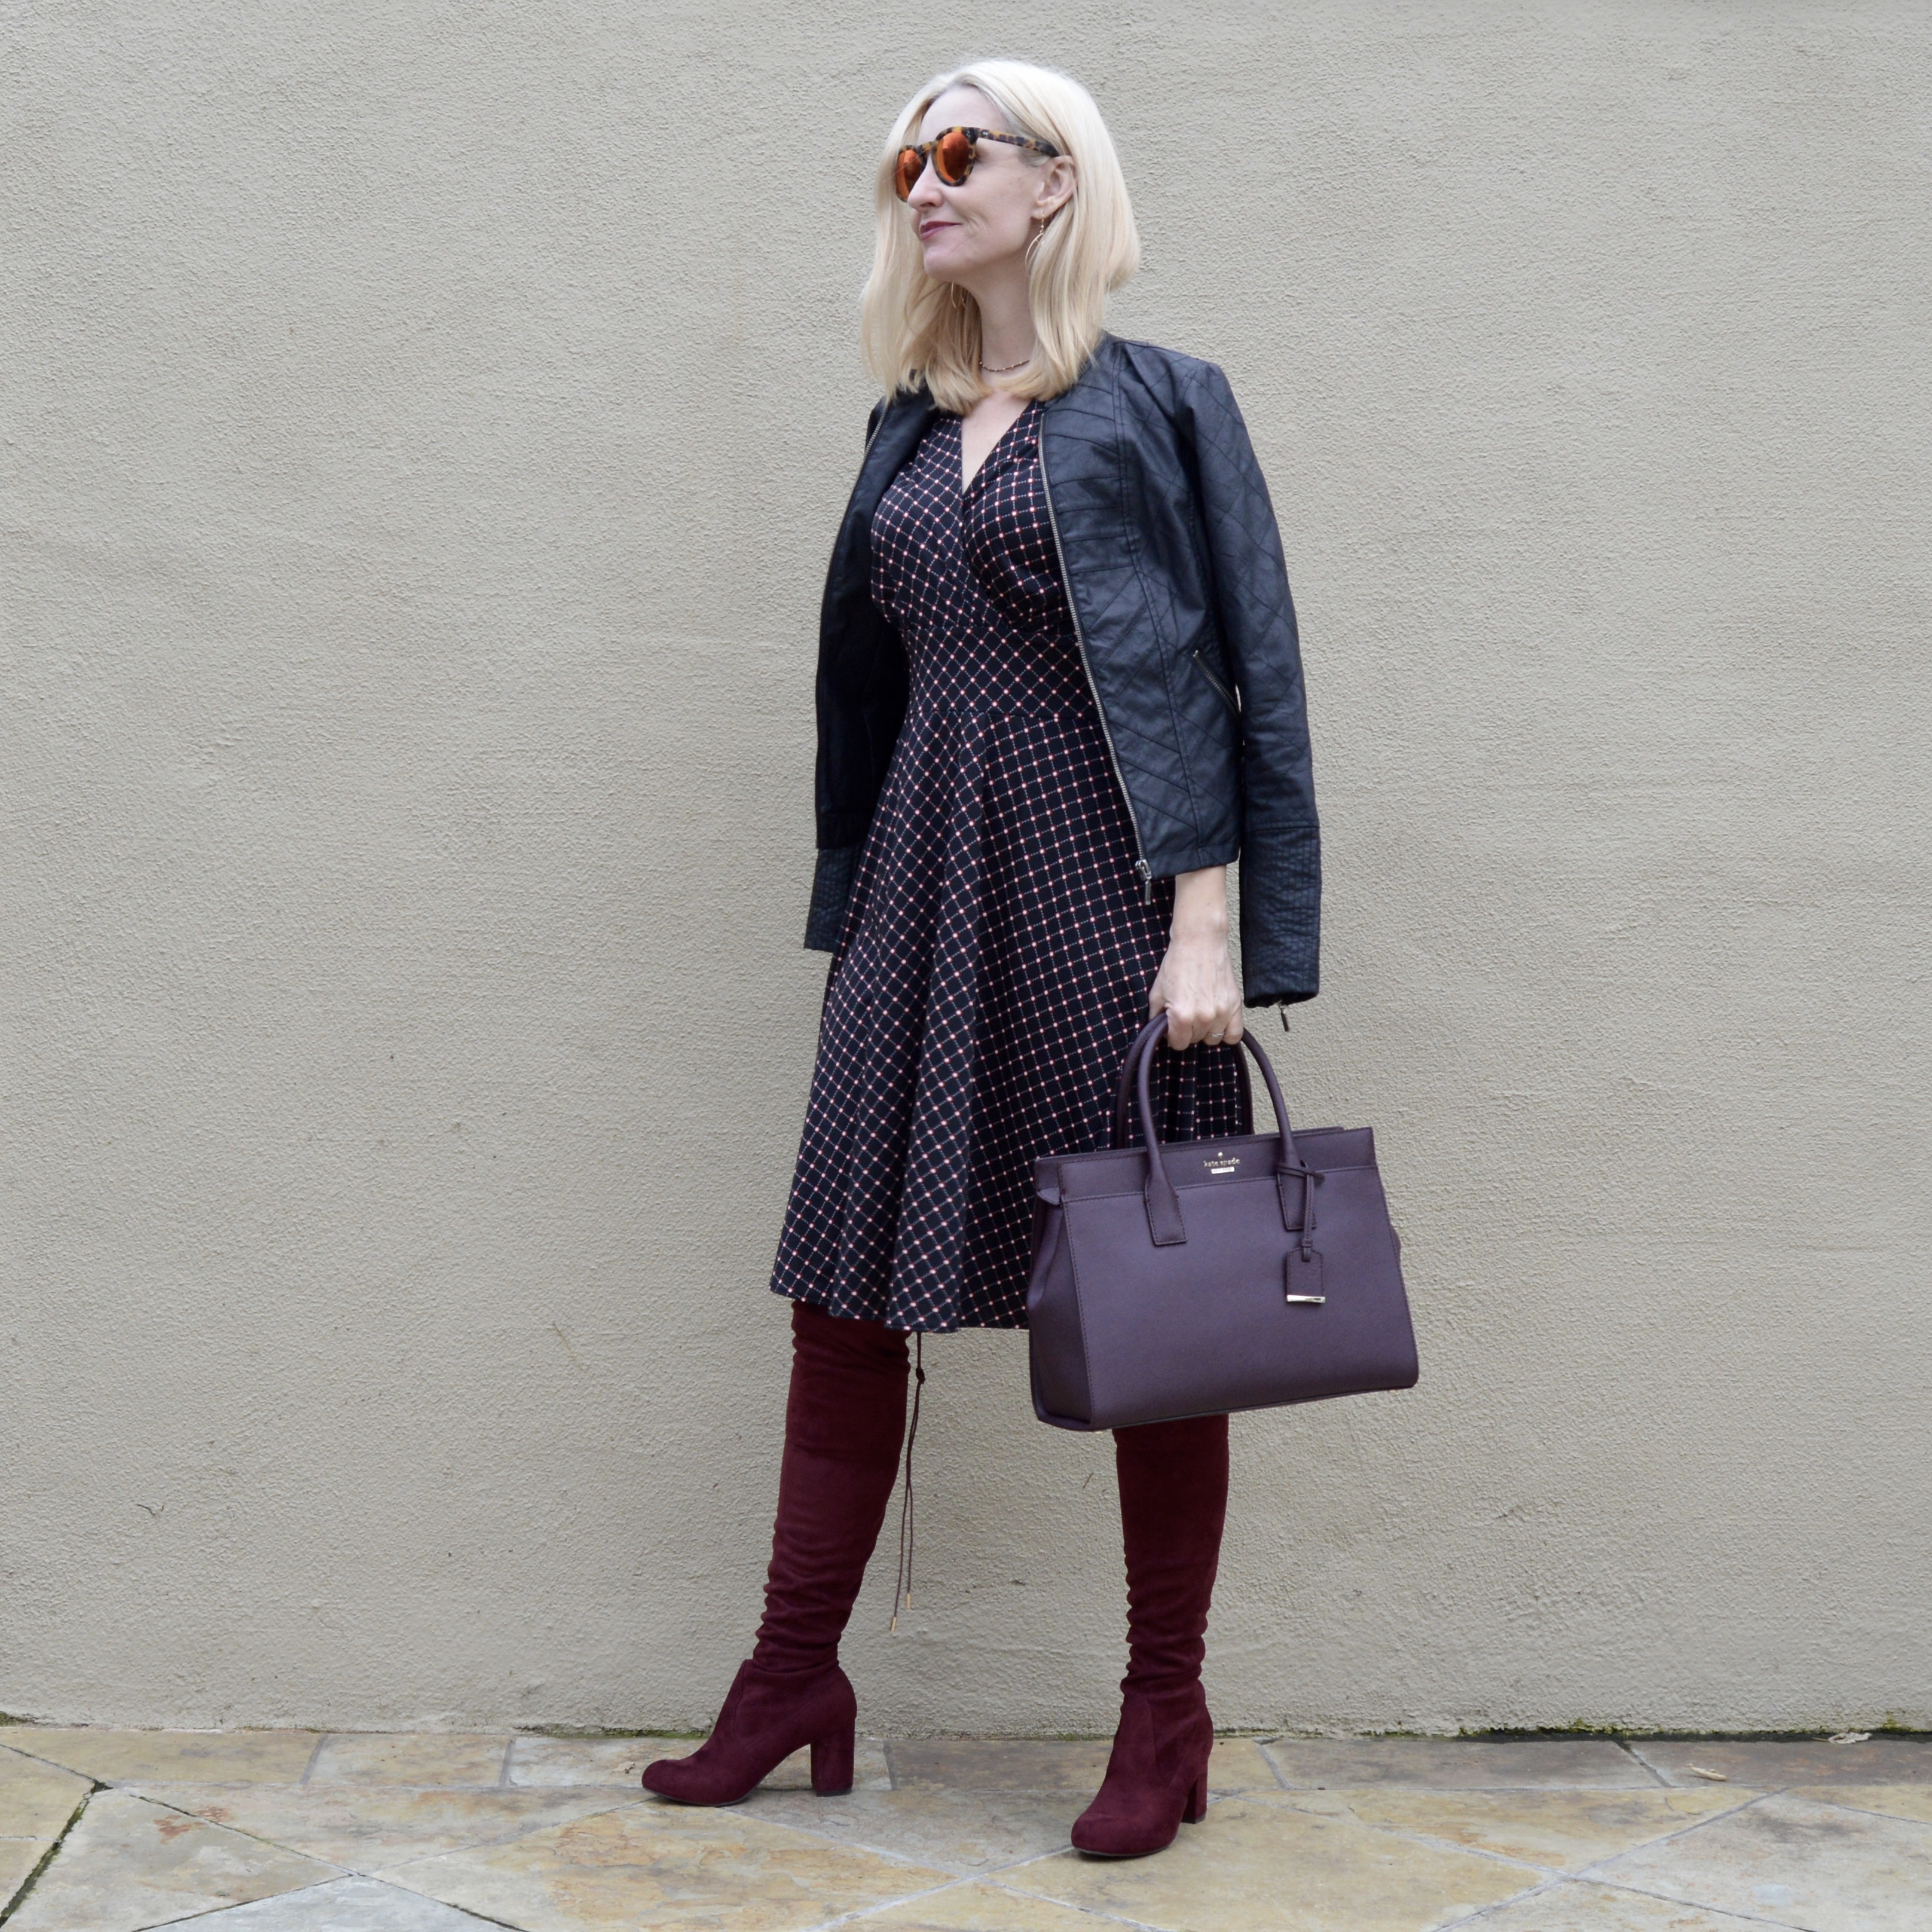 styling over the knee boots, classic dresses